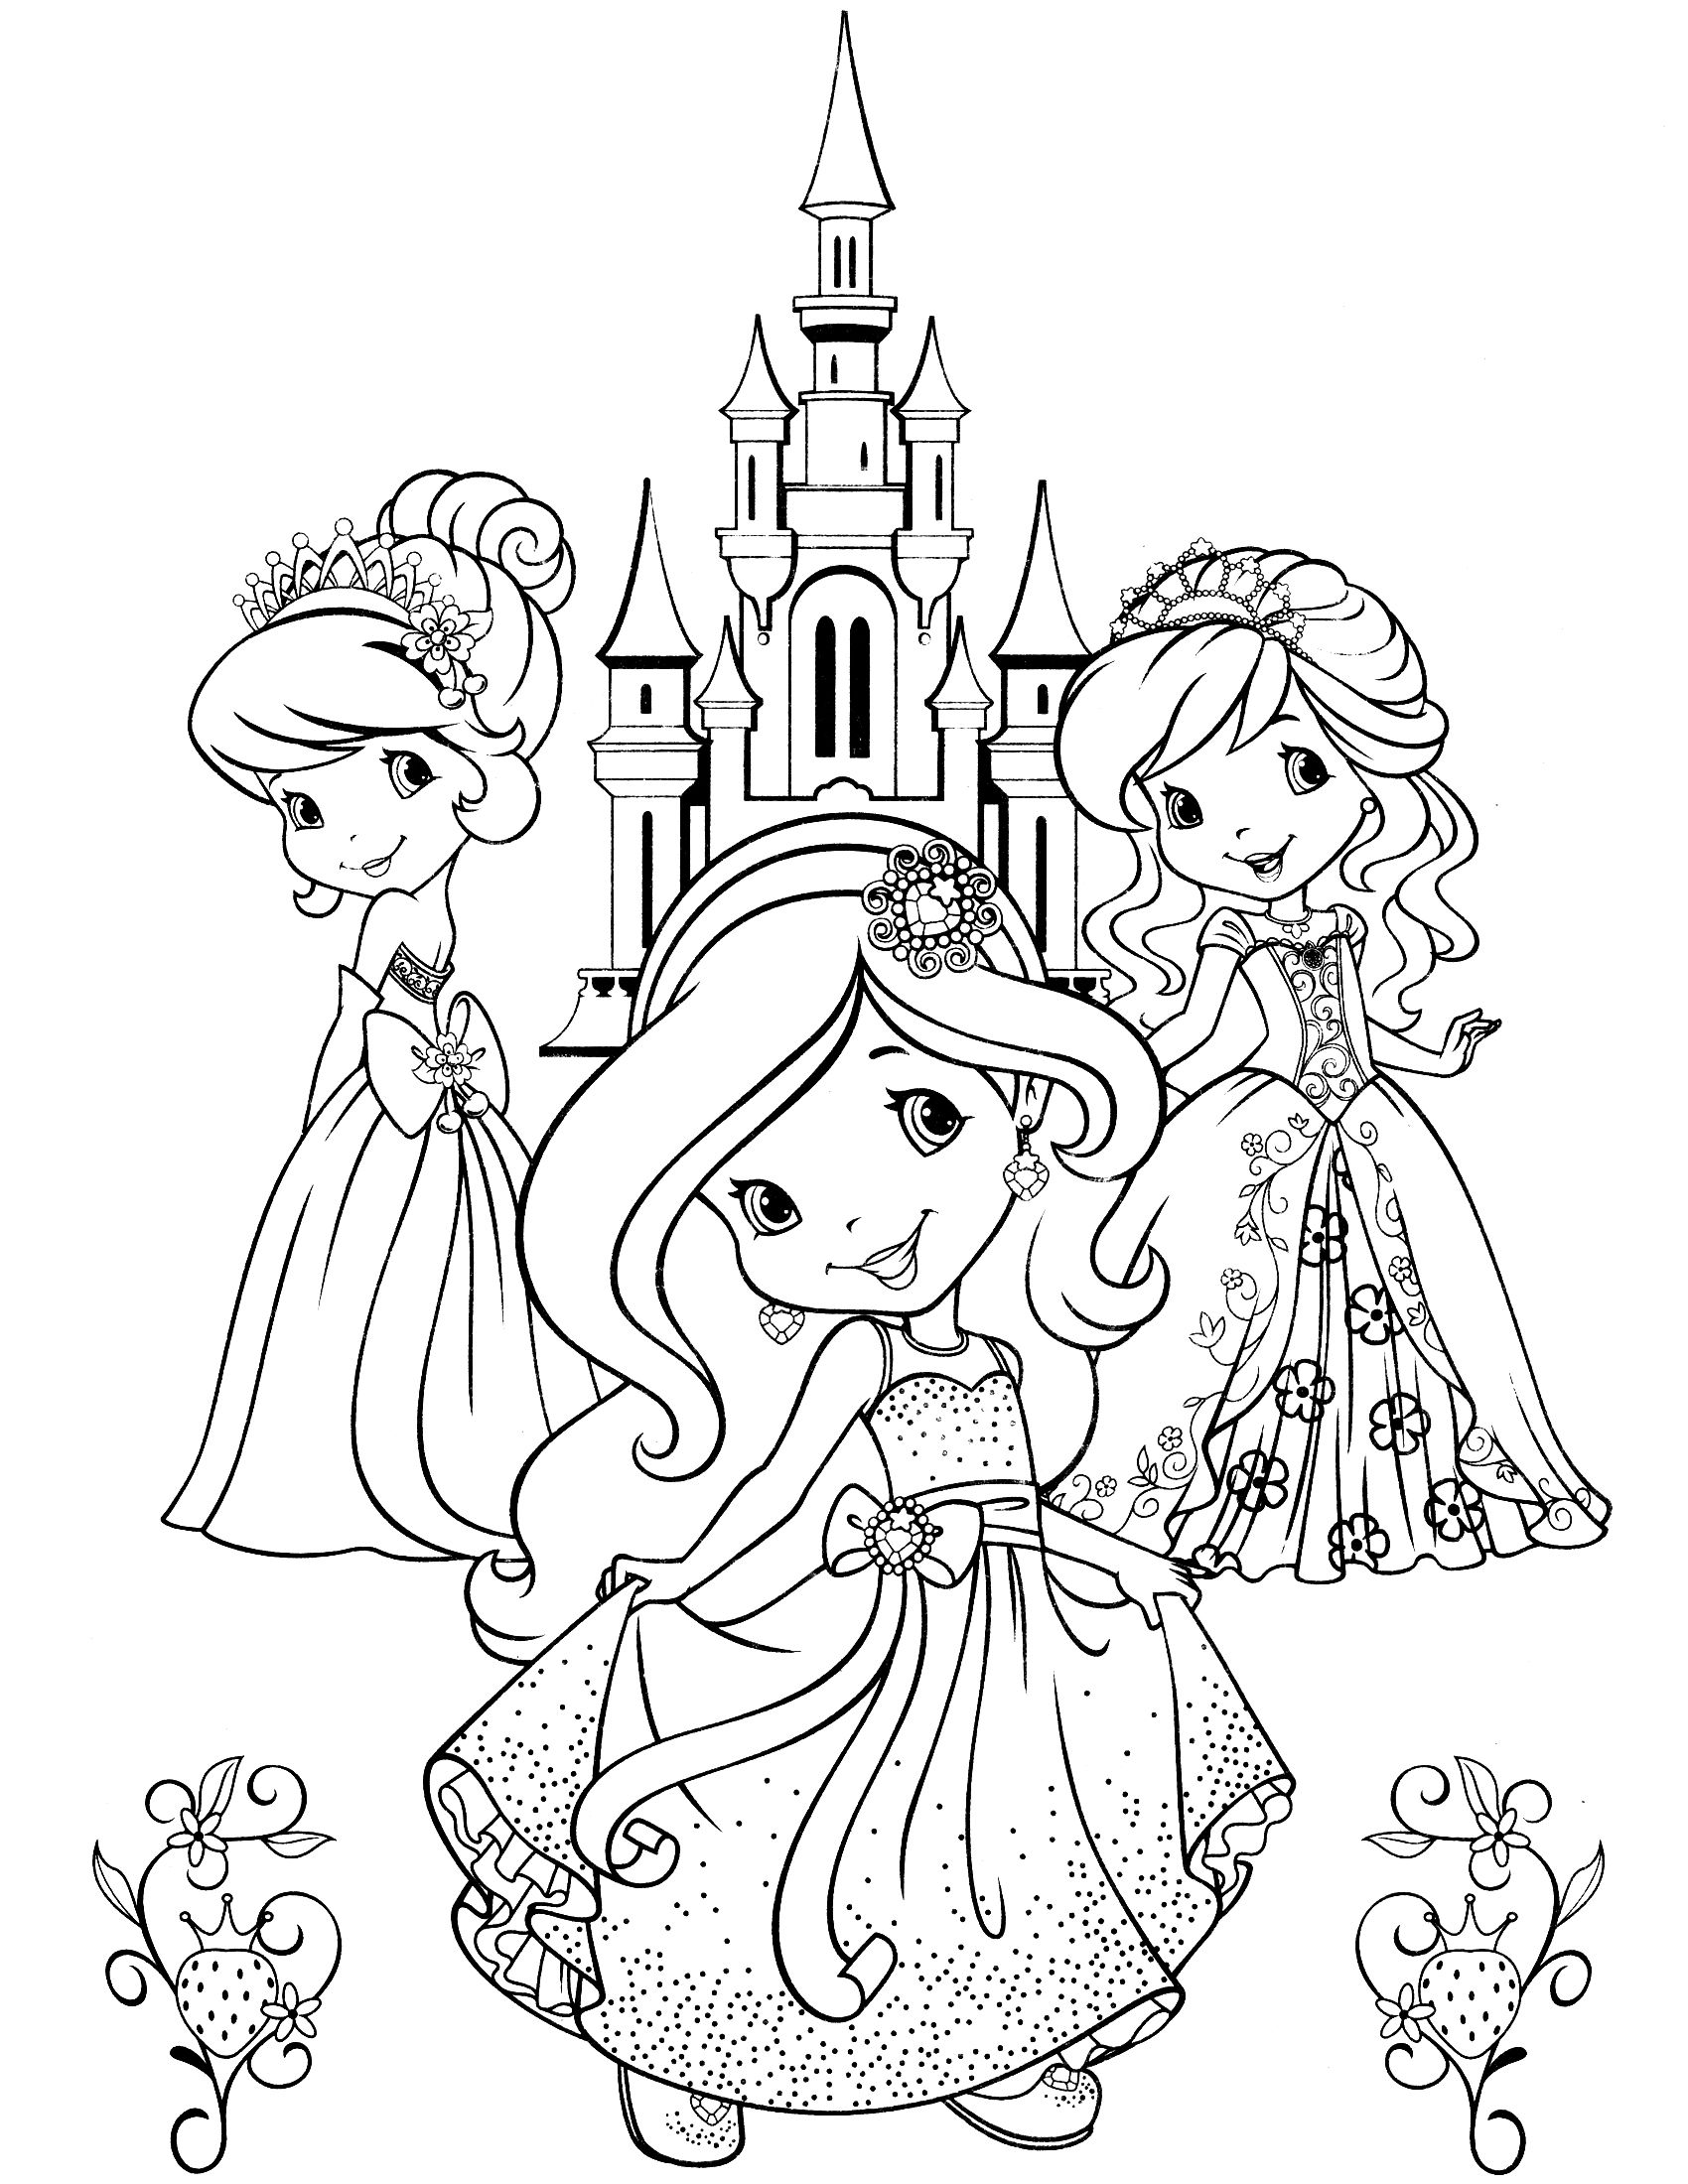 Strawberry Shortcake Coloring Page | Coloring Pages